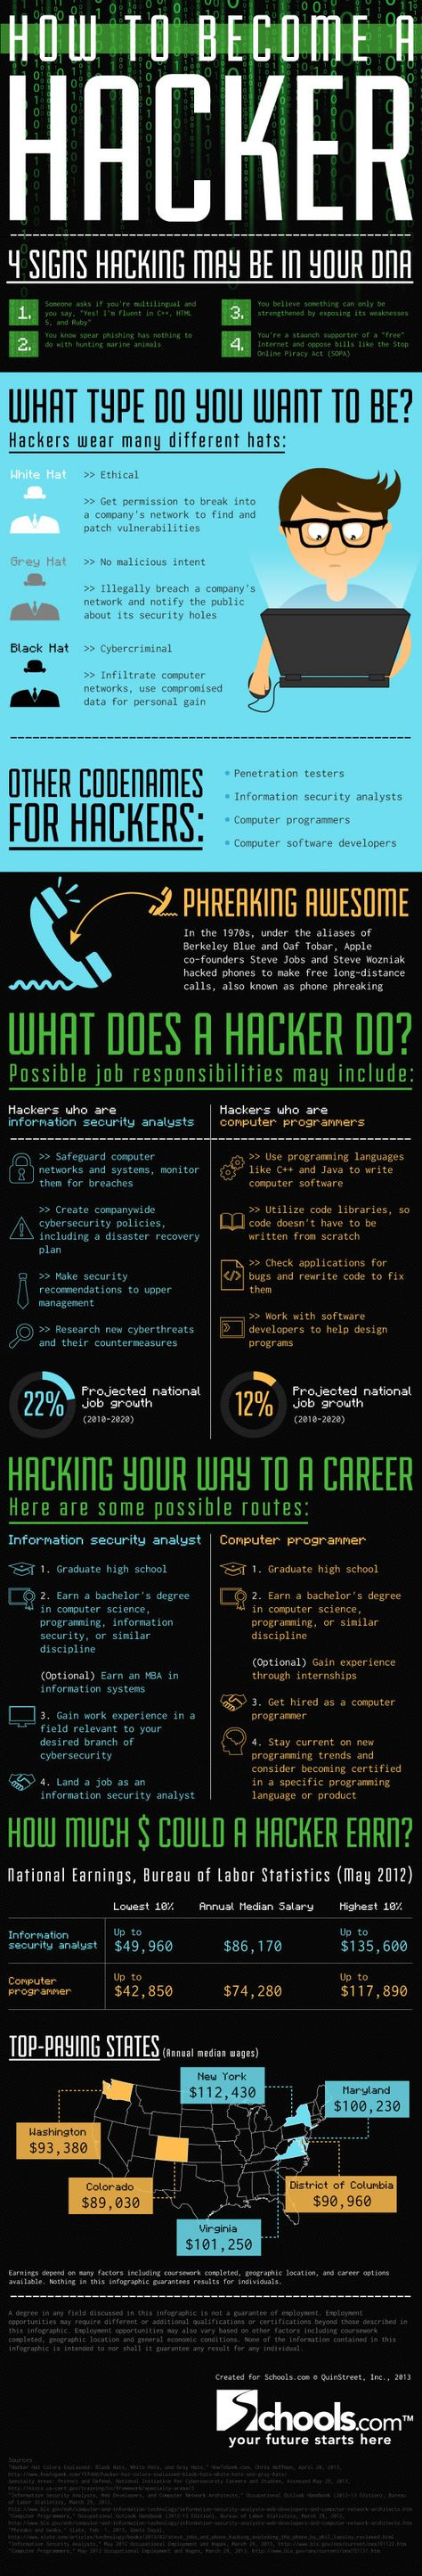 How To Become A Hacker - 4 Signs Hacking May Be In Your DNA #infographic